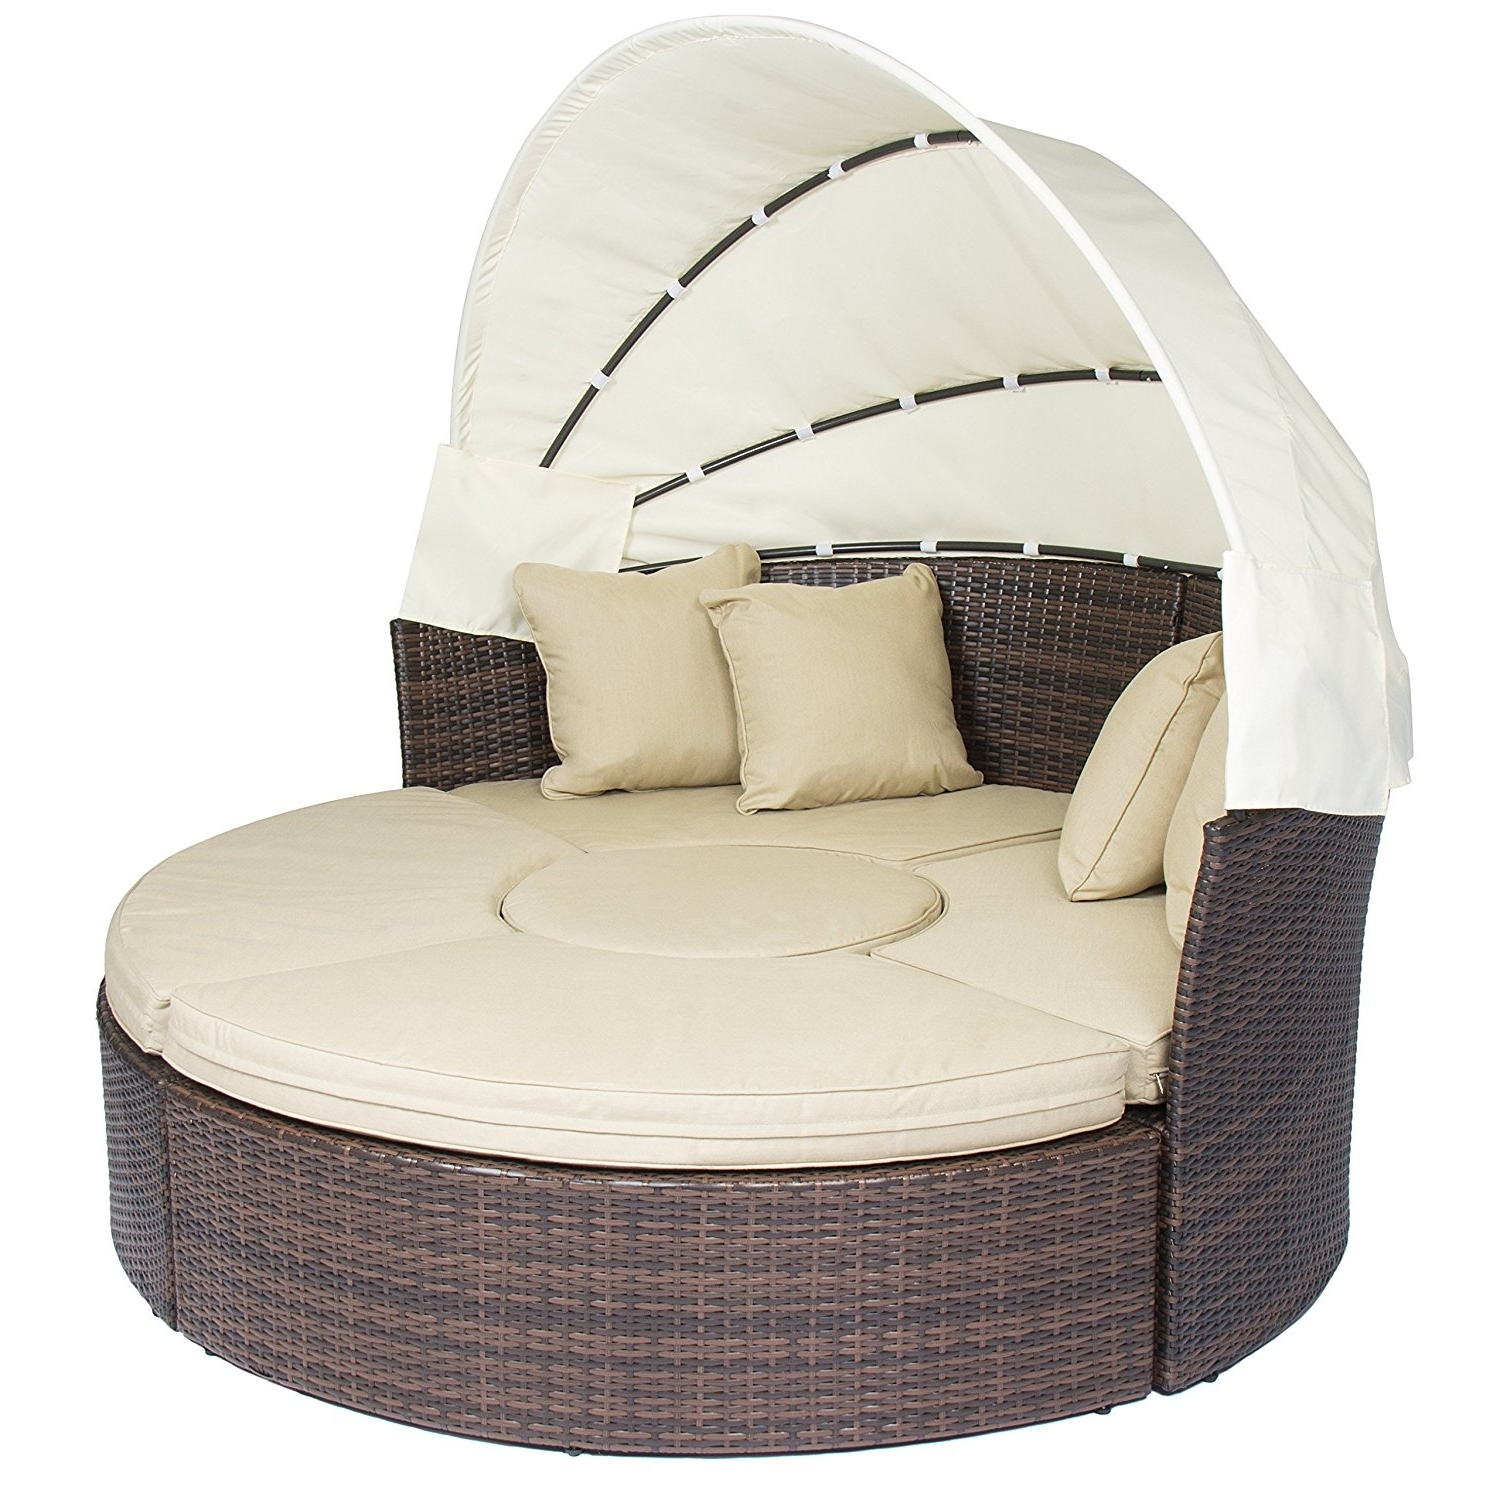 Newest Patio Sofas With Regard To Amazon : Outdoor Patio Sofa Furniture Round Retractable Canopy (View 13 of 15)